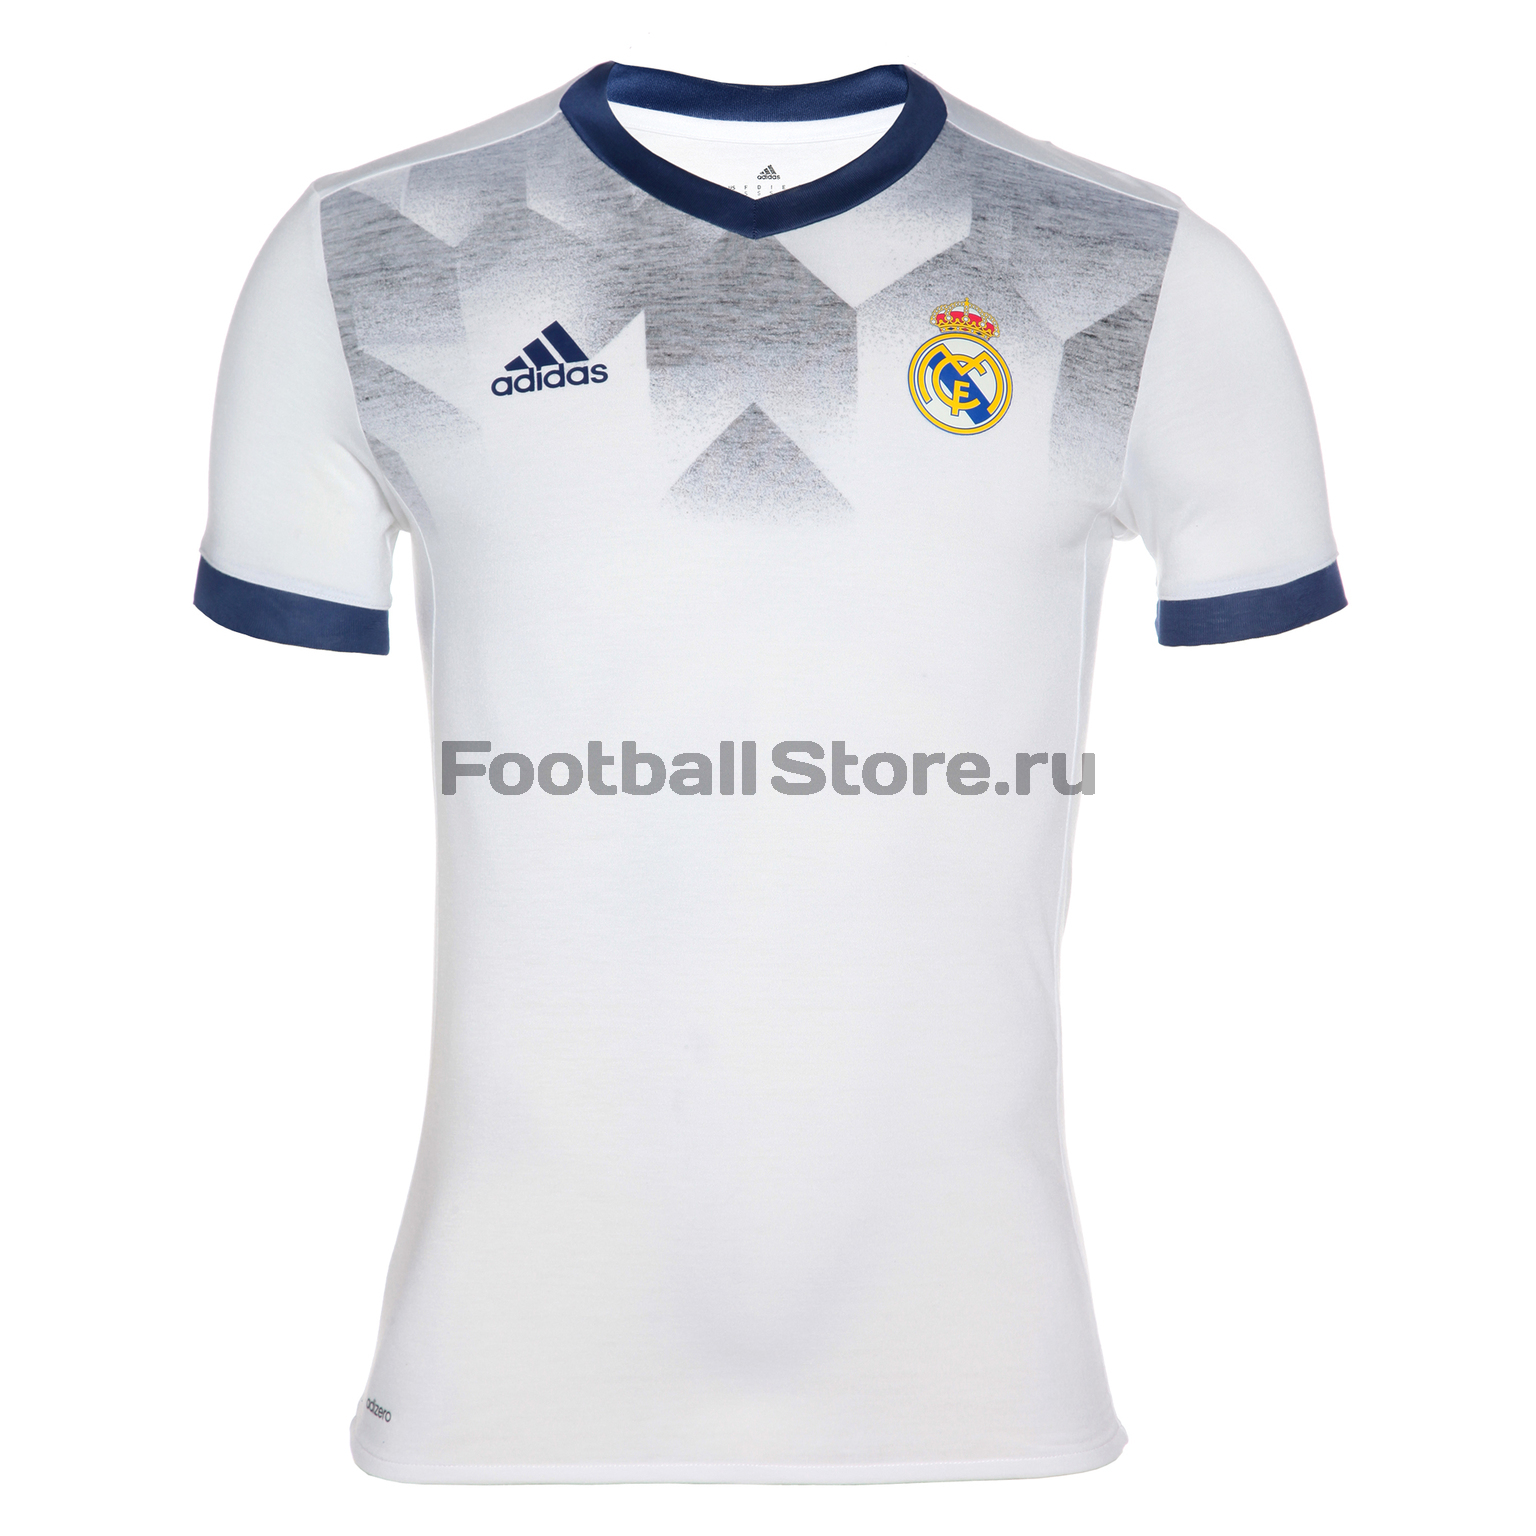 Real Madrid Adidas Футболка тренировочная Adidas Real Madrid H Preshi BP9169 real madrid adidas свитер adidas real madrid euhybrid top bq7851